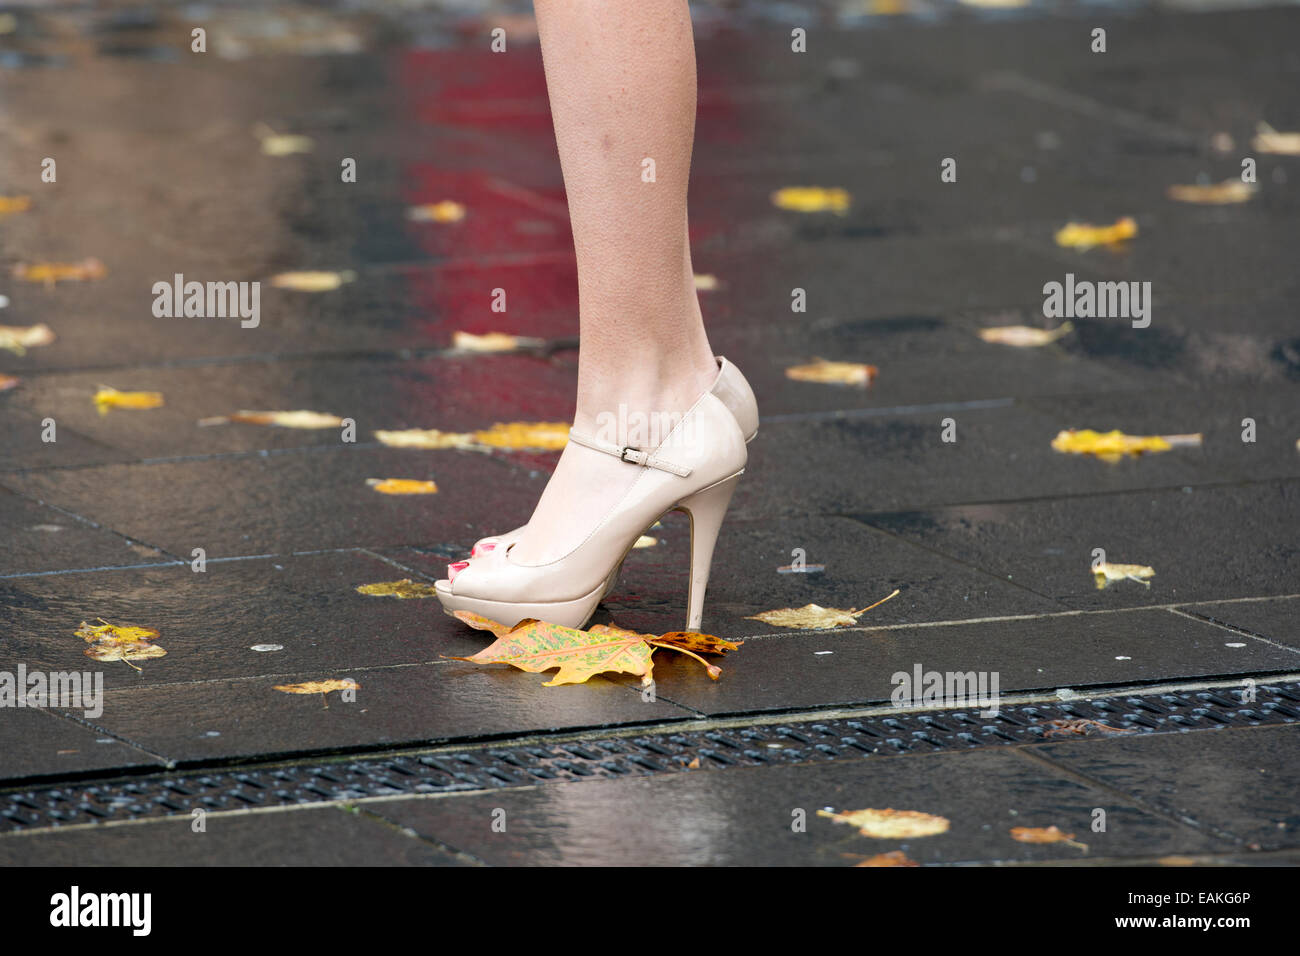 Coventry University graduation day - young woman wearing stiletto heels - Stock Image